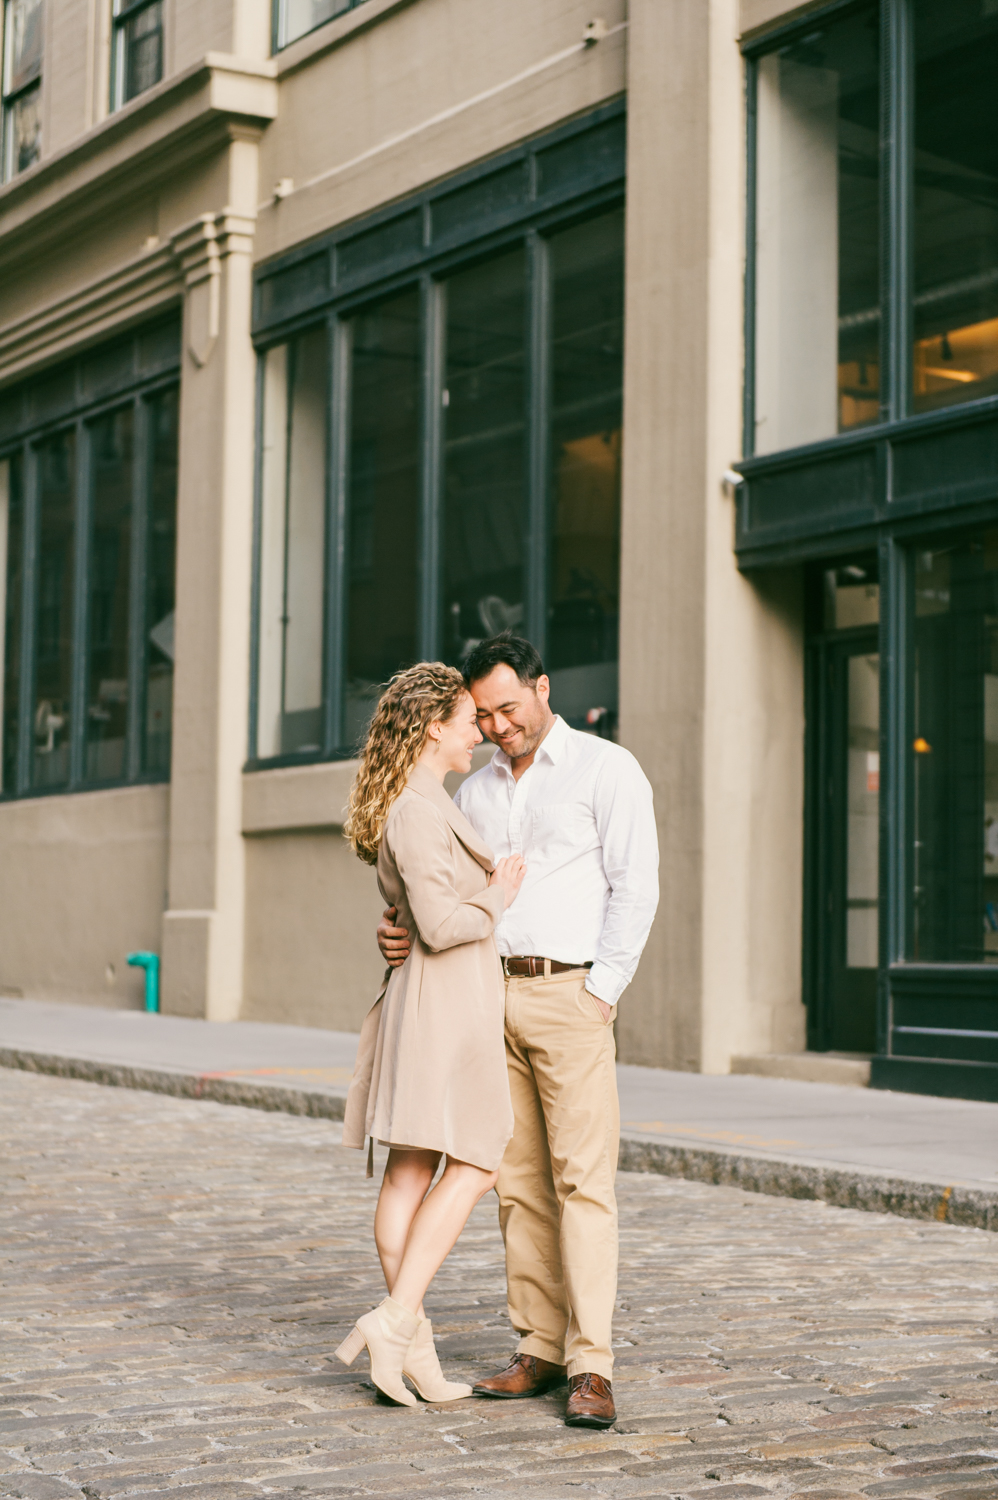 DUMBO.BrooklynBridgePark.FineArtWeddingPhotographer.KatHarris8.jpg